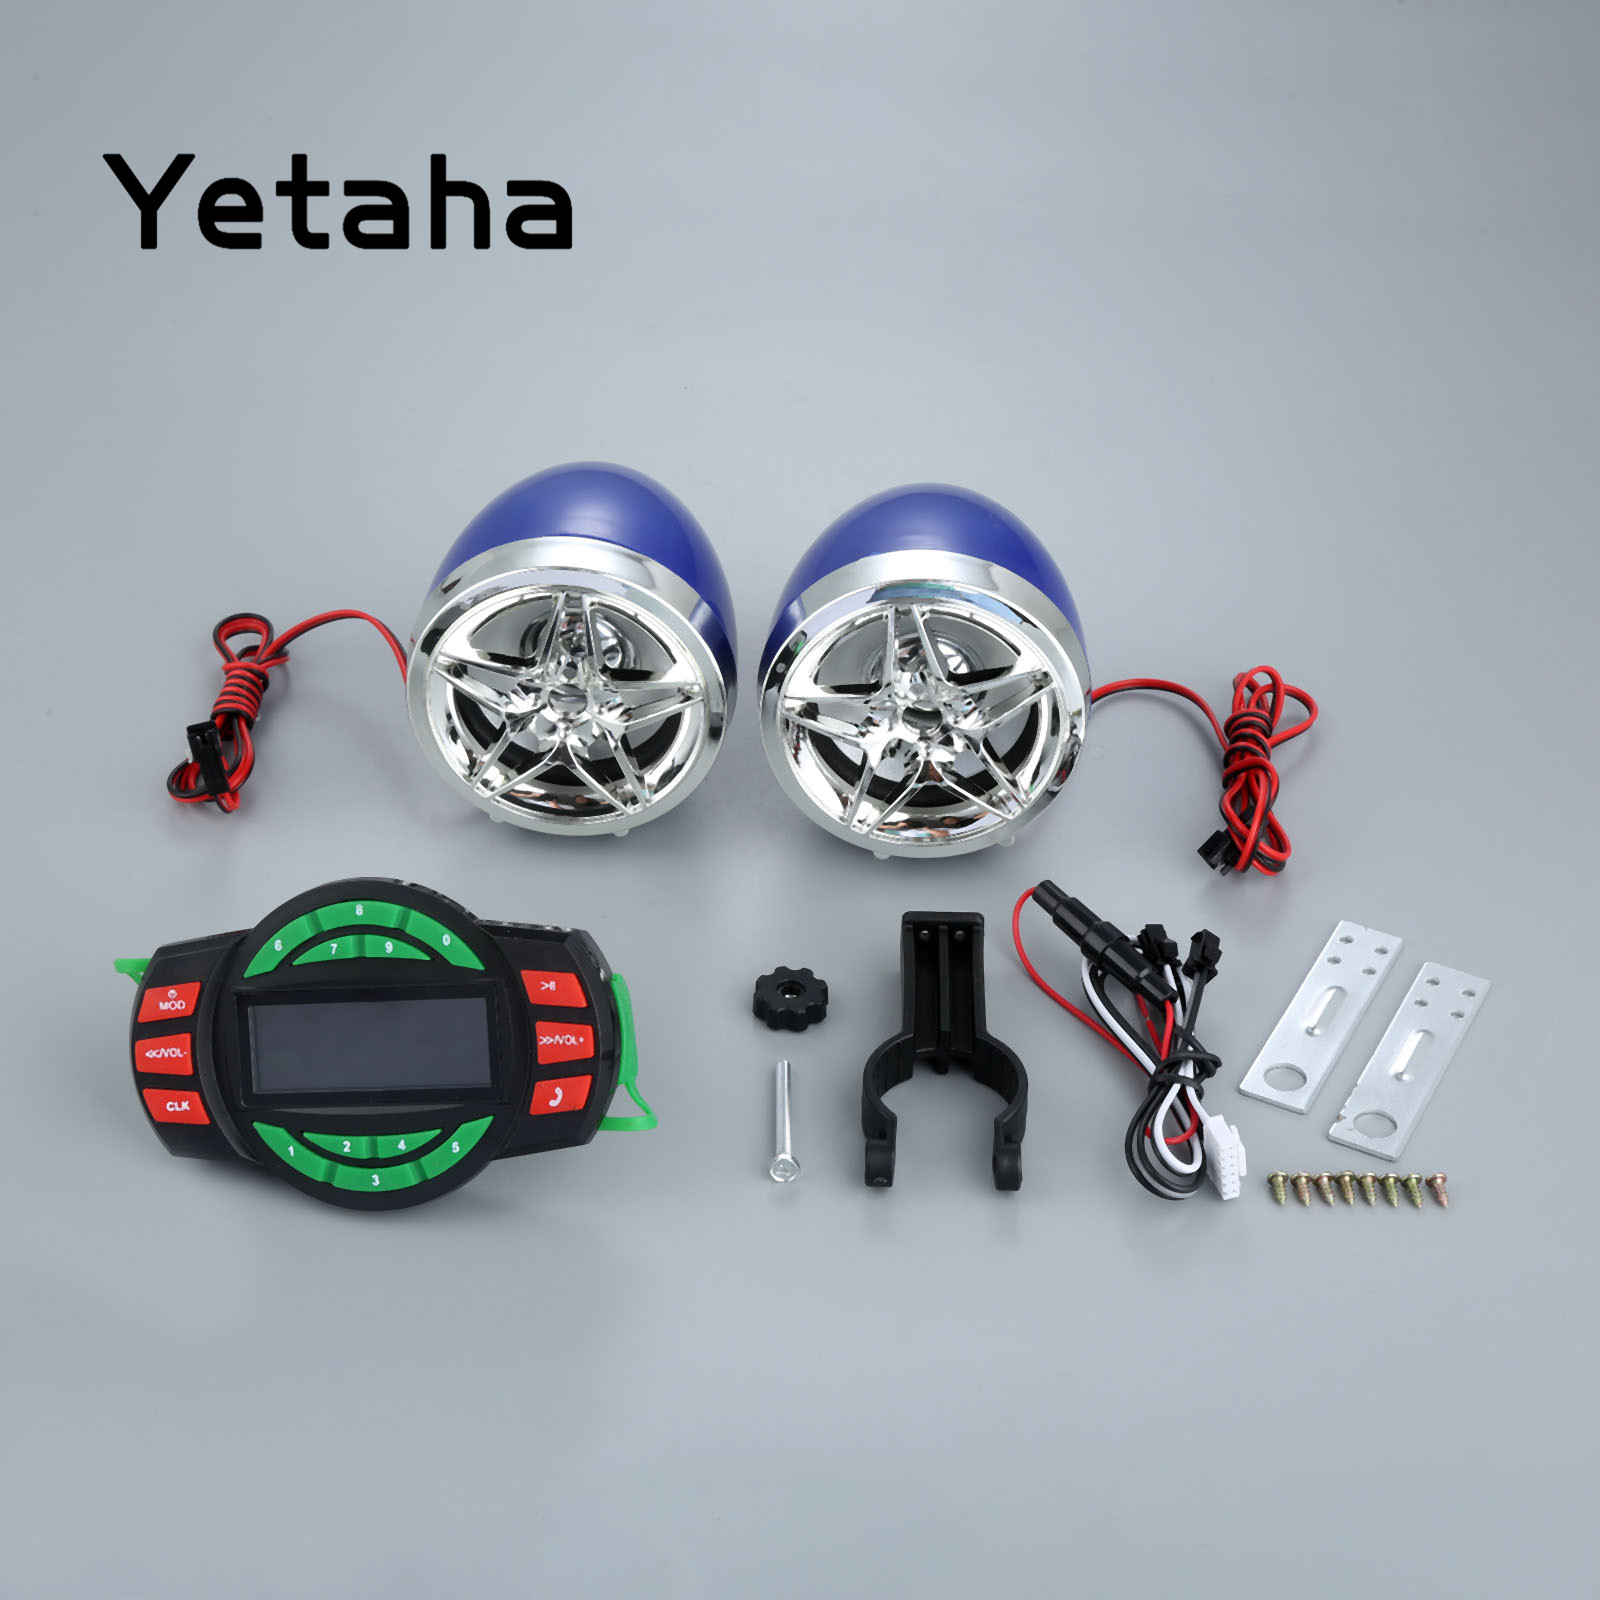 Yetaha Motorcycle Bluetooth Audio System MP3 Player Speakers Sets Moto Anti-theft Waterproof Support SD TF USB Phone Charging